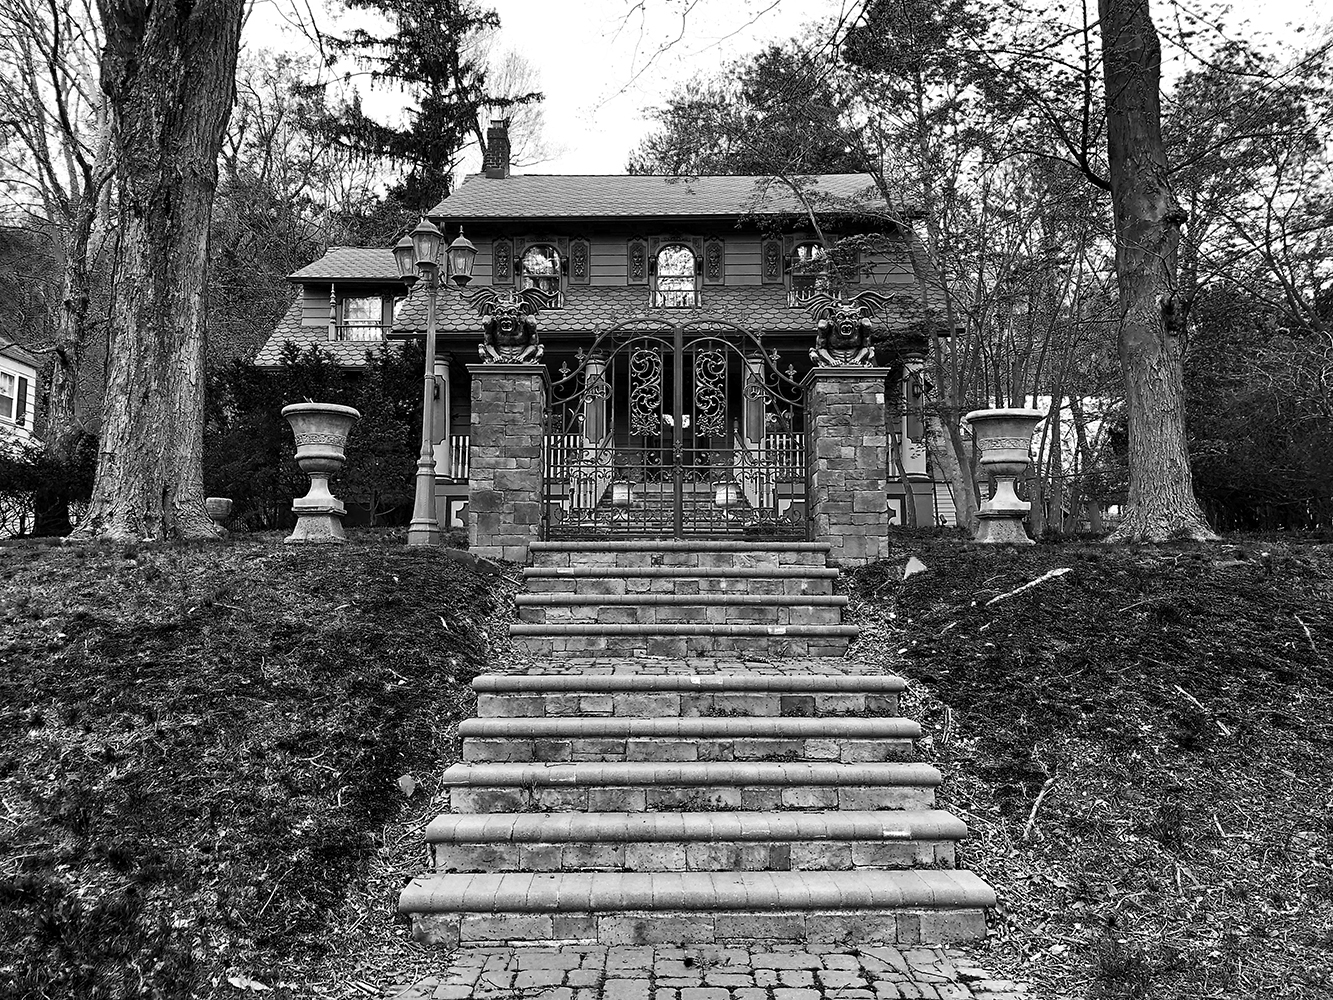 Black and white photo of stone house decorated with gargoyles, pyres and fences Architectural Photography